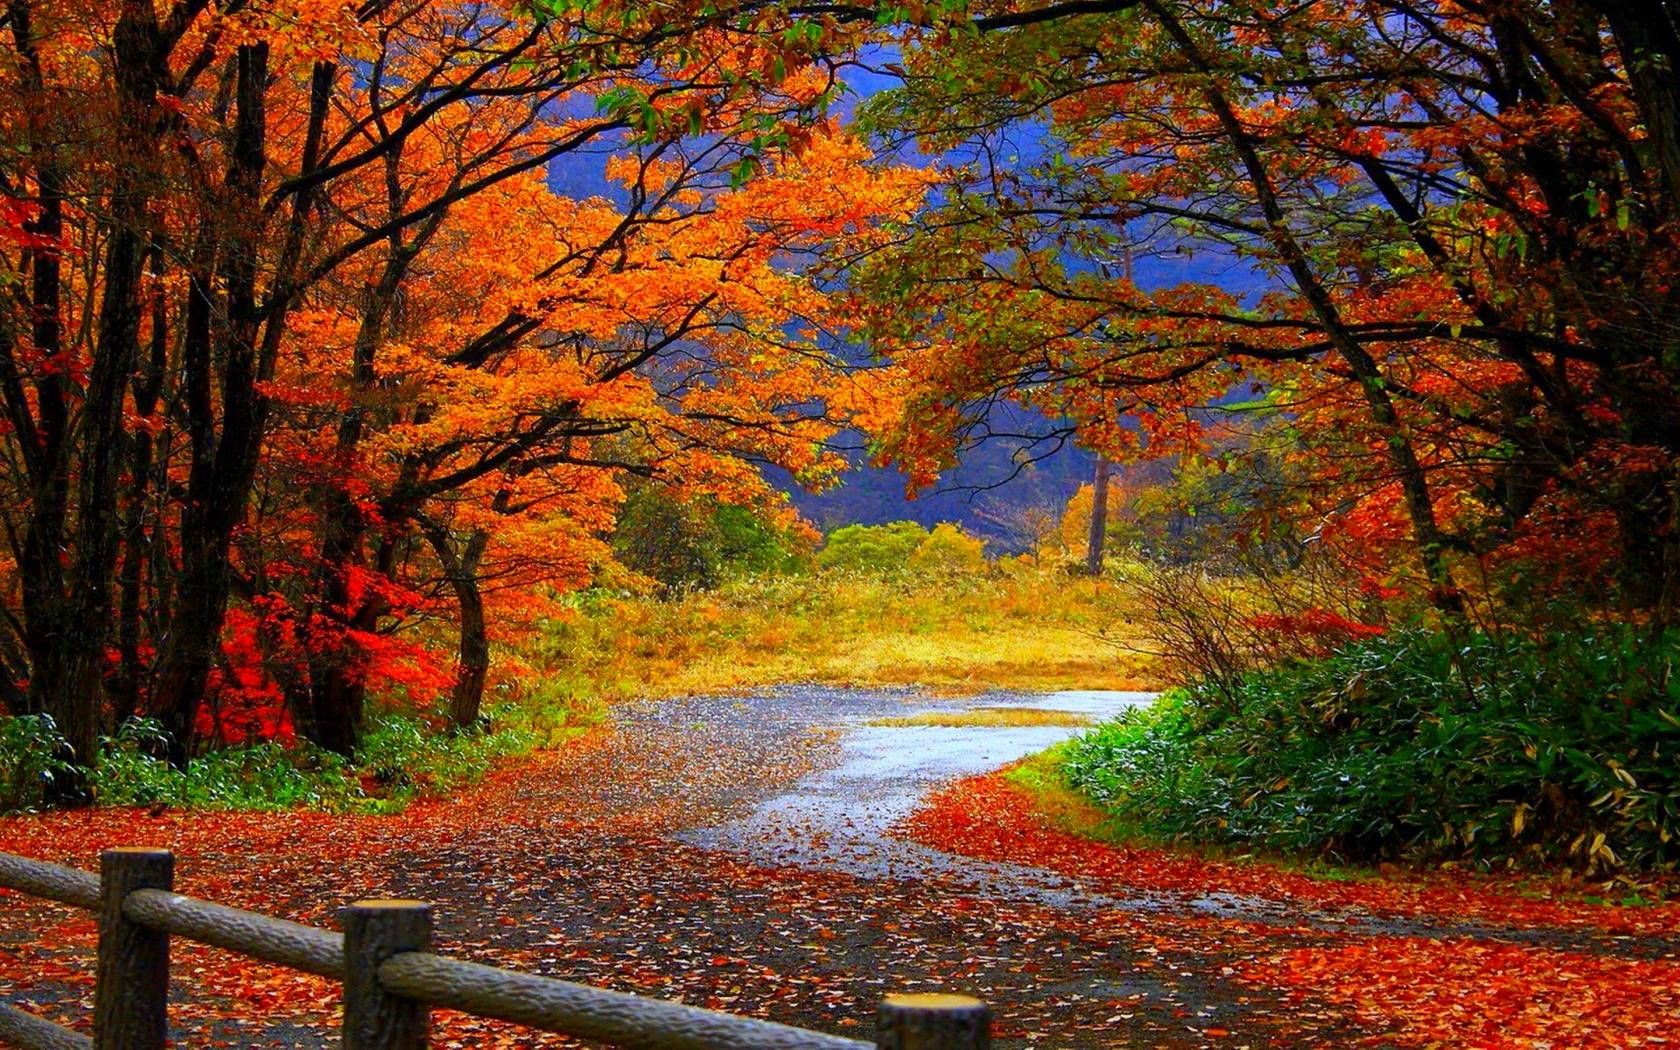 Autumn Wallpapers HD Desktop Backgrounds Images and